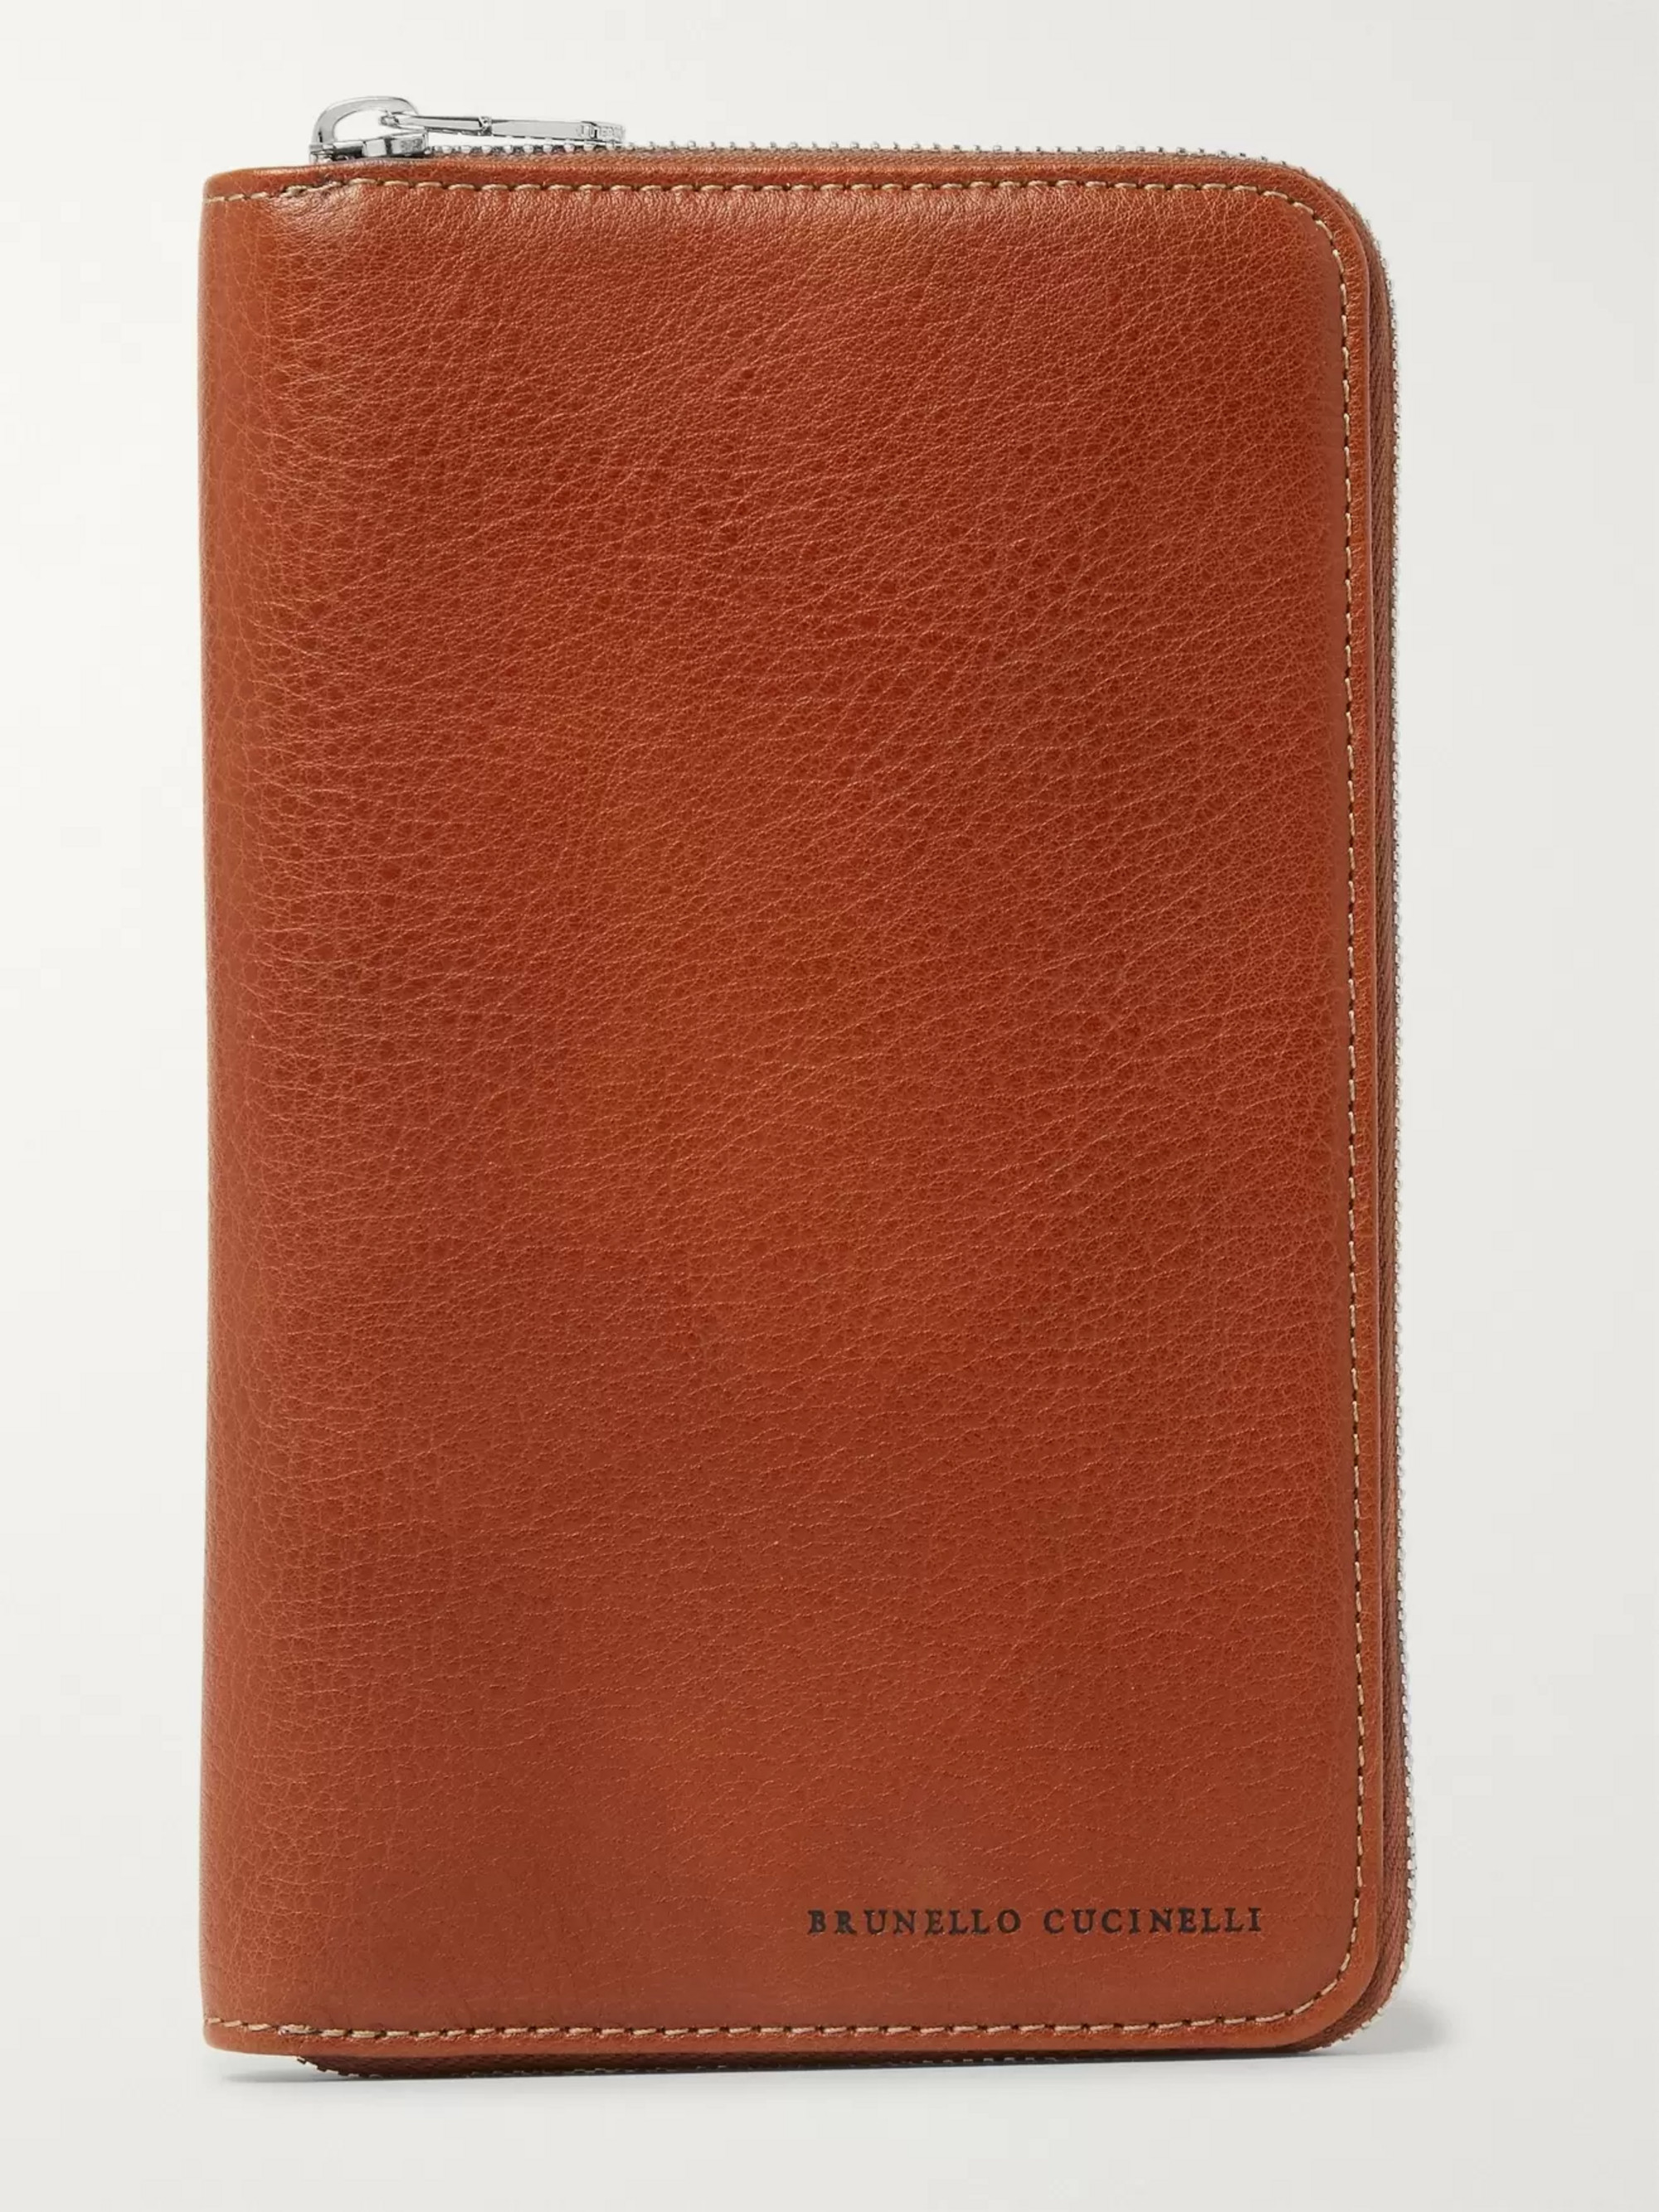 Brunello Cucinelli Full-Grain Leather Zip-Around Travel Wallet